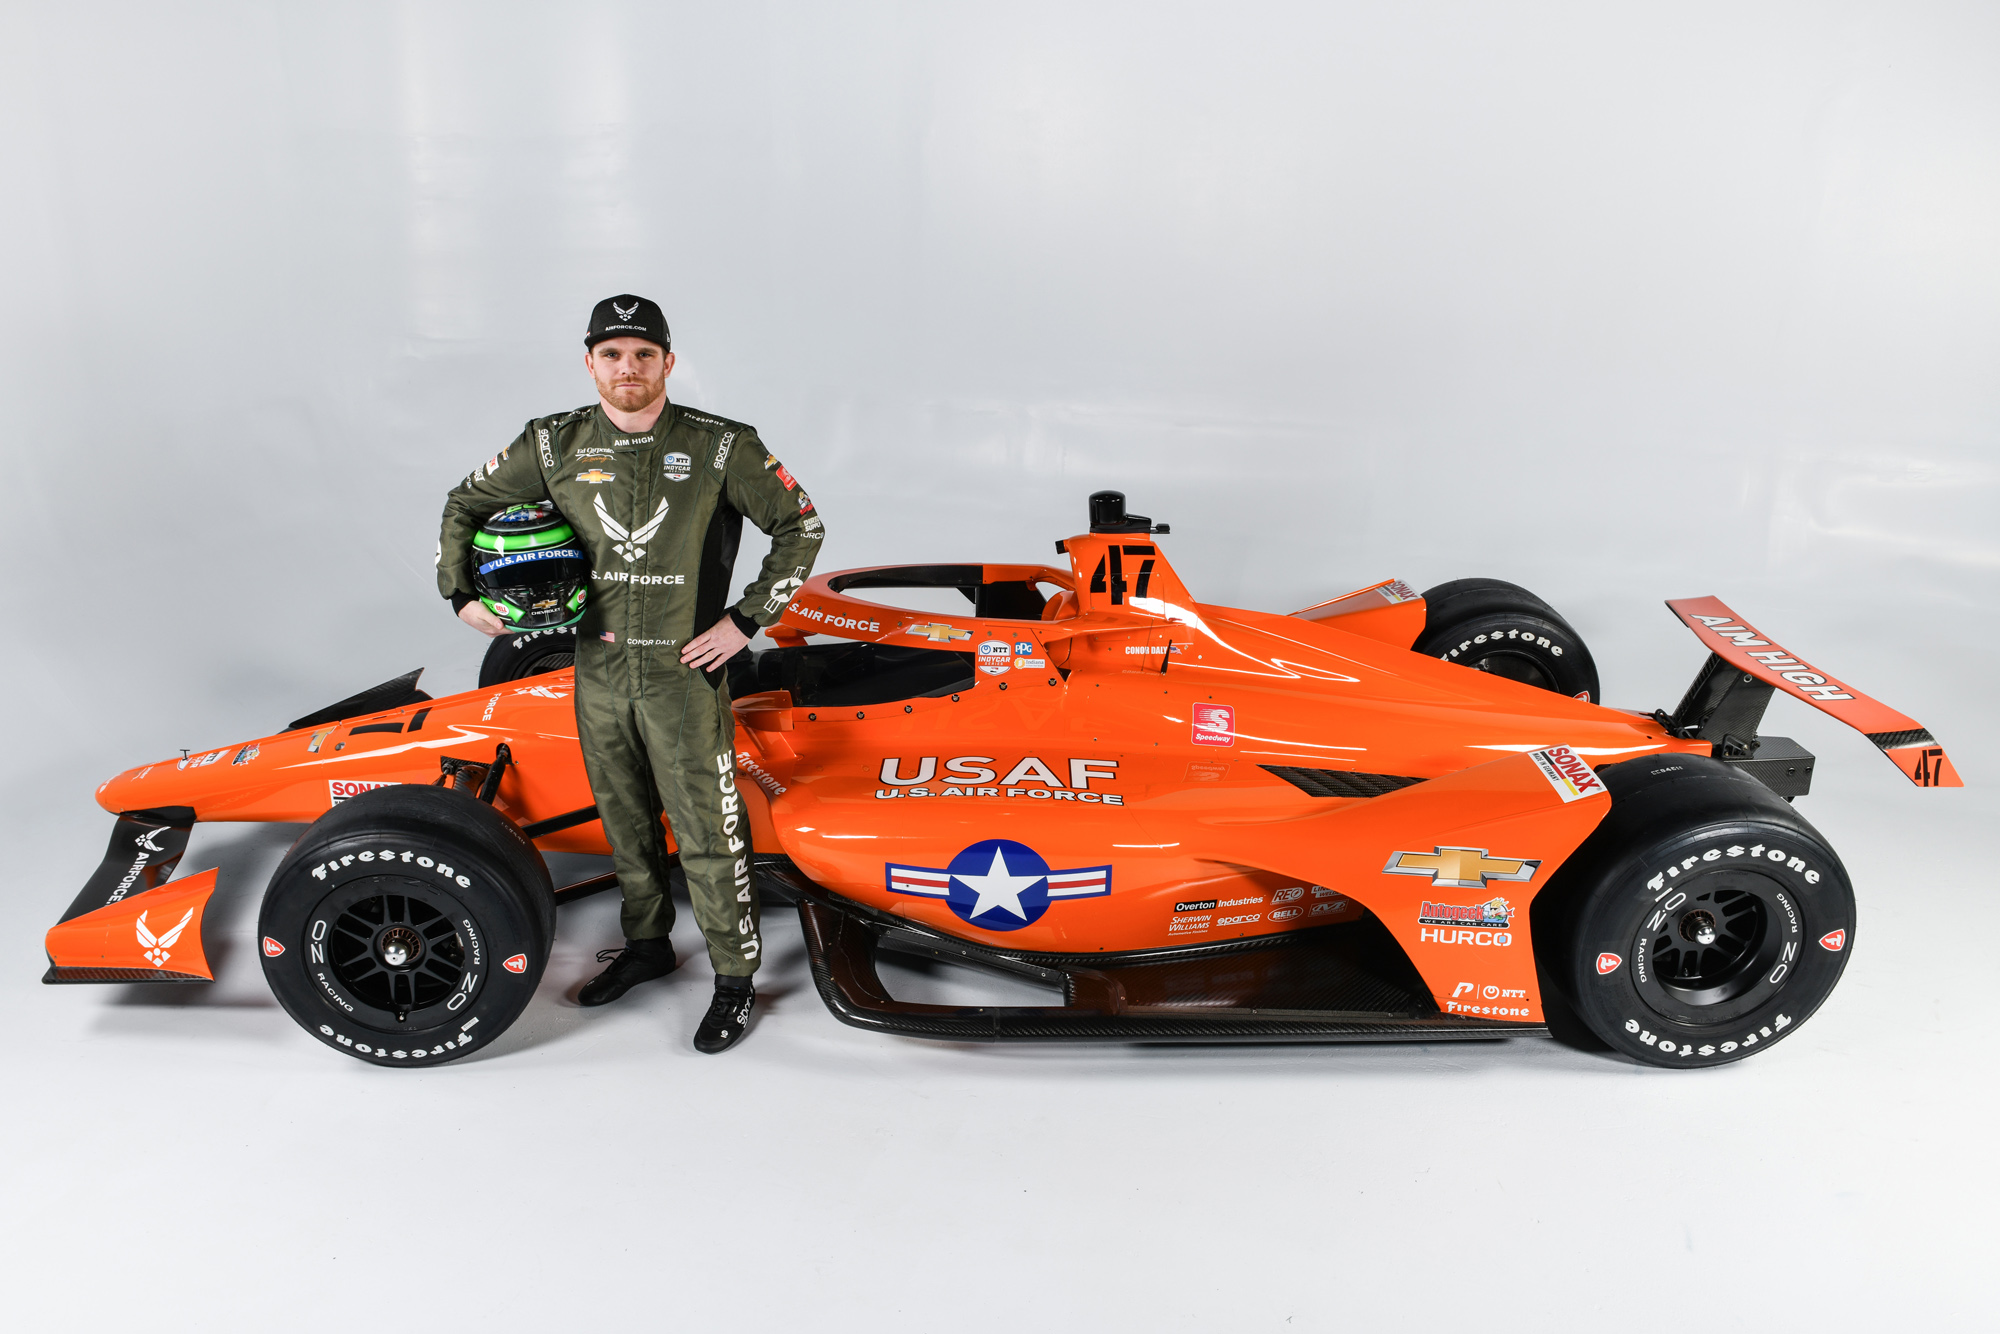 U.S. AIR FORCE UNVEILS CONOR DALY'S INDIANAPOLIS 500 CAR AND NUMBER